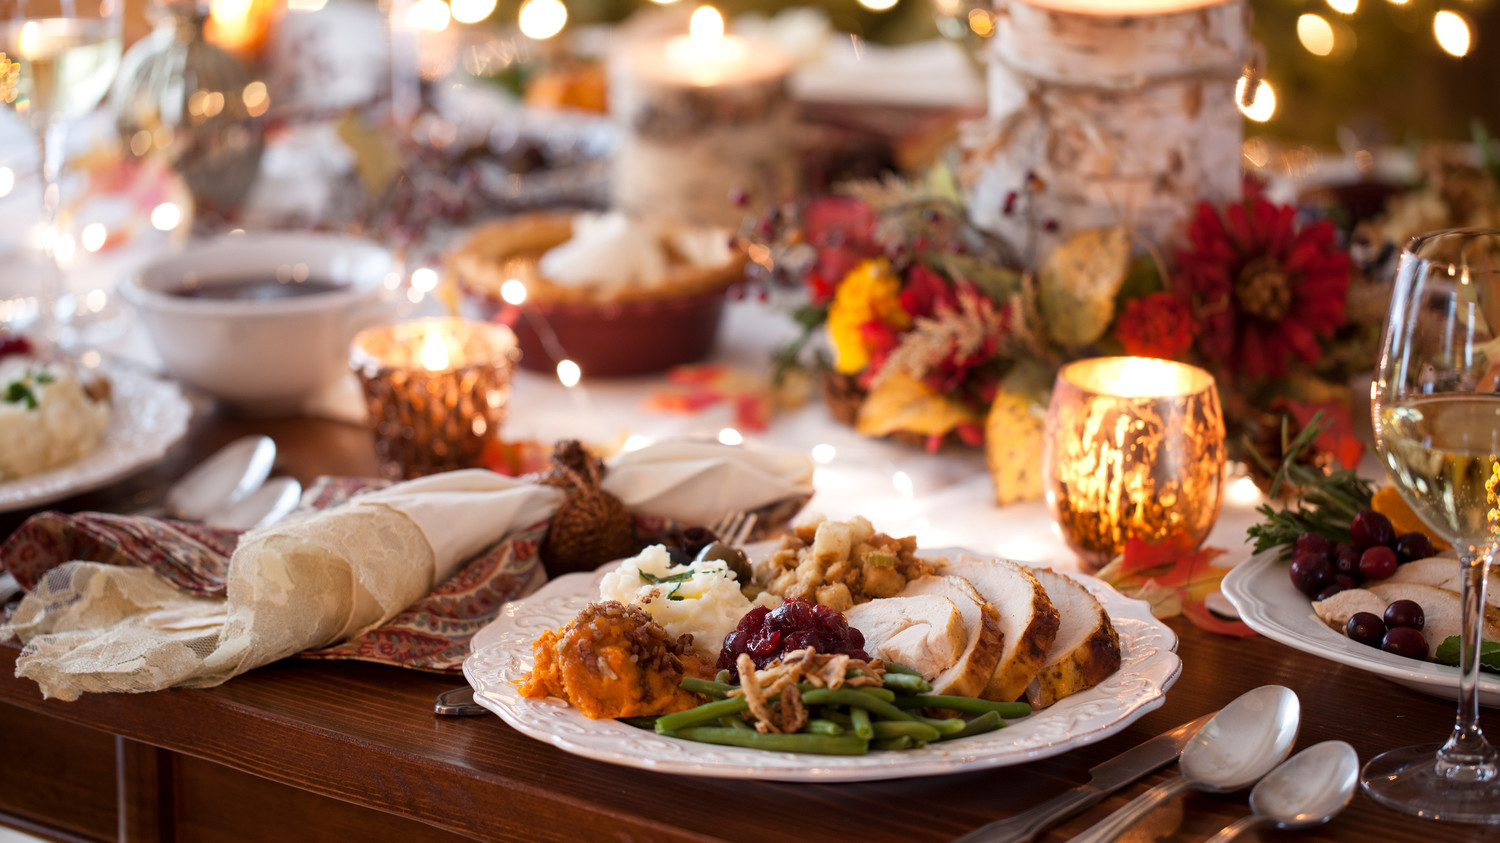 Americans Will Spend Over $300 Hosting Thanksgiving This Year, According to a New Study